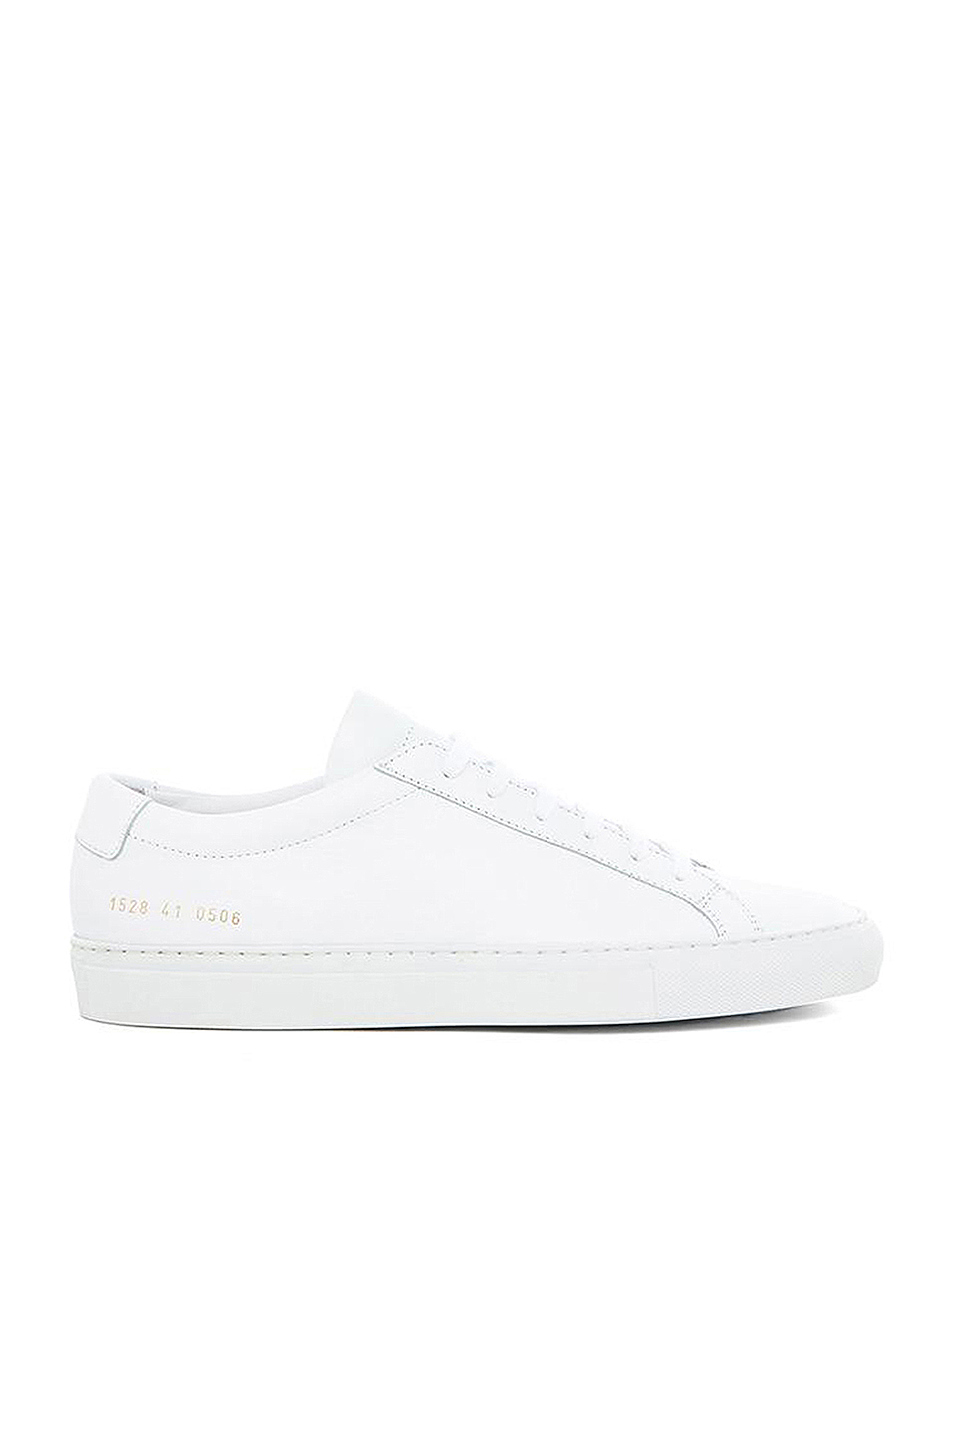 Common Projects Original Achilles Leather Low Tops in White